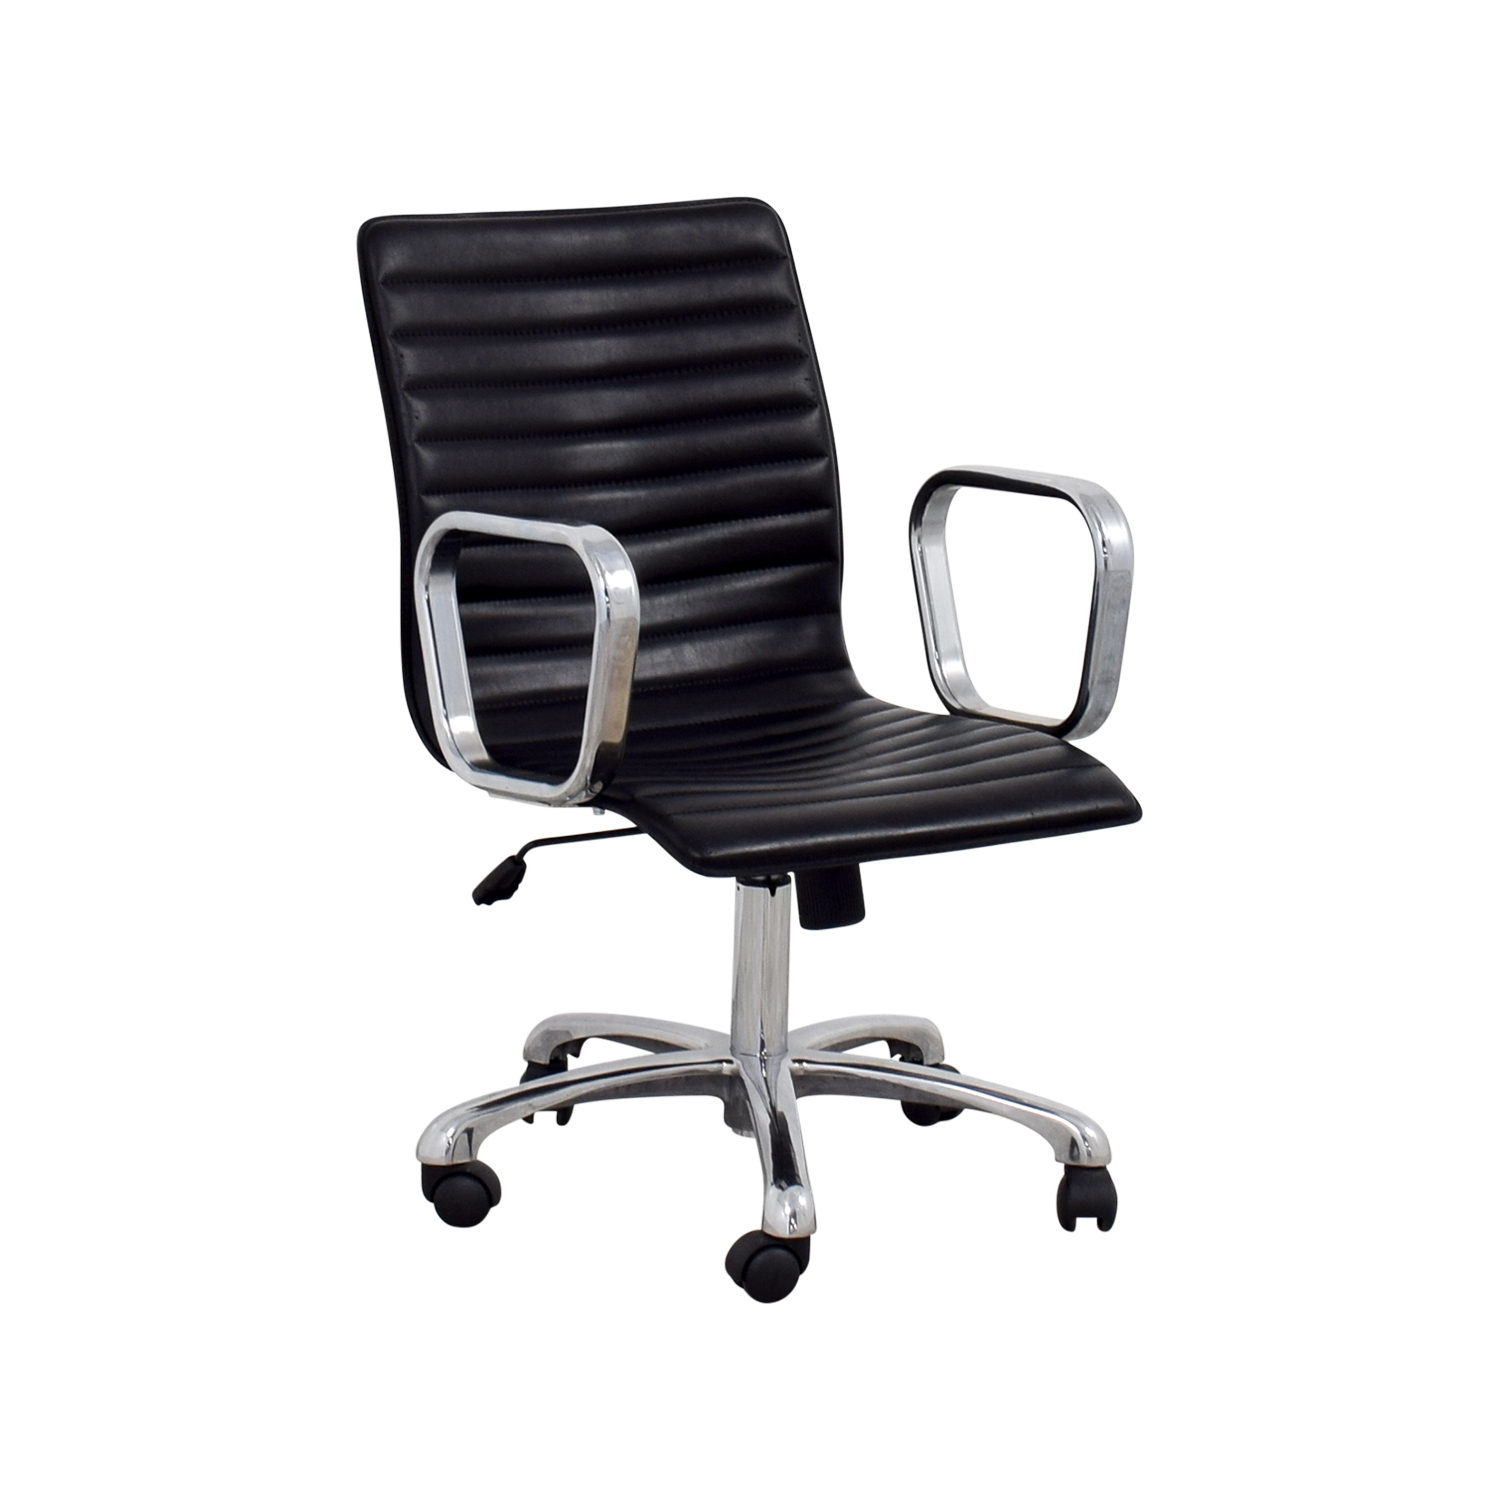 Crate & Barrel Ripple Leather Office Chair Crate & Barrel